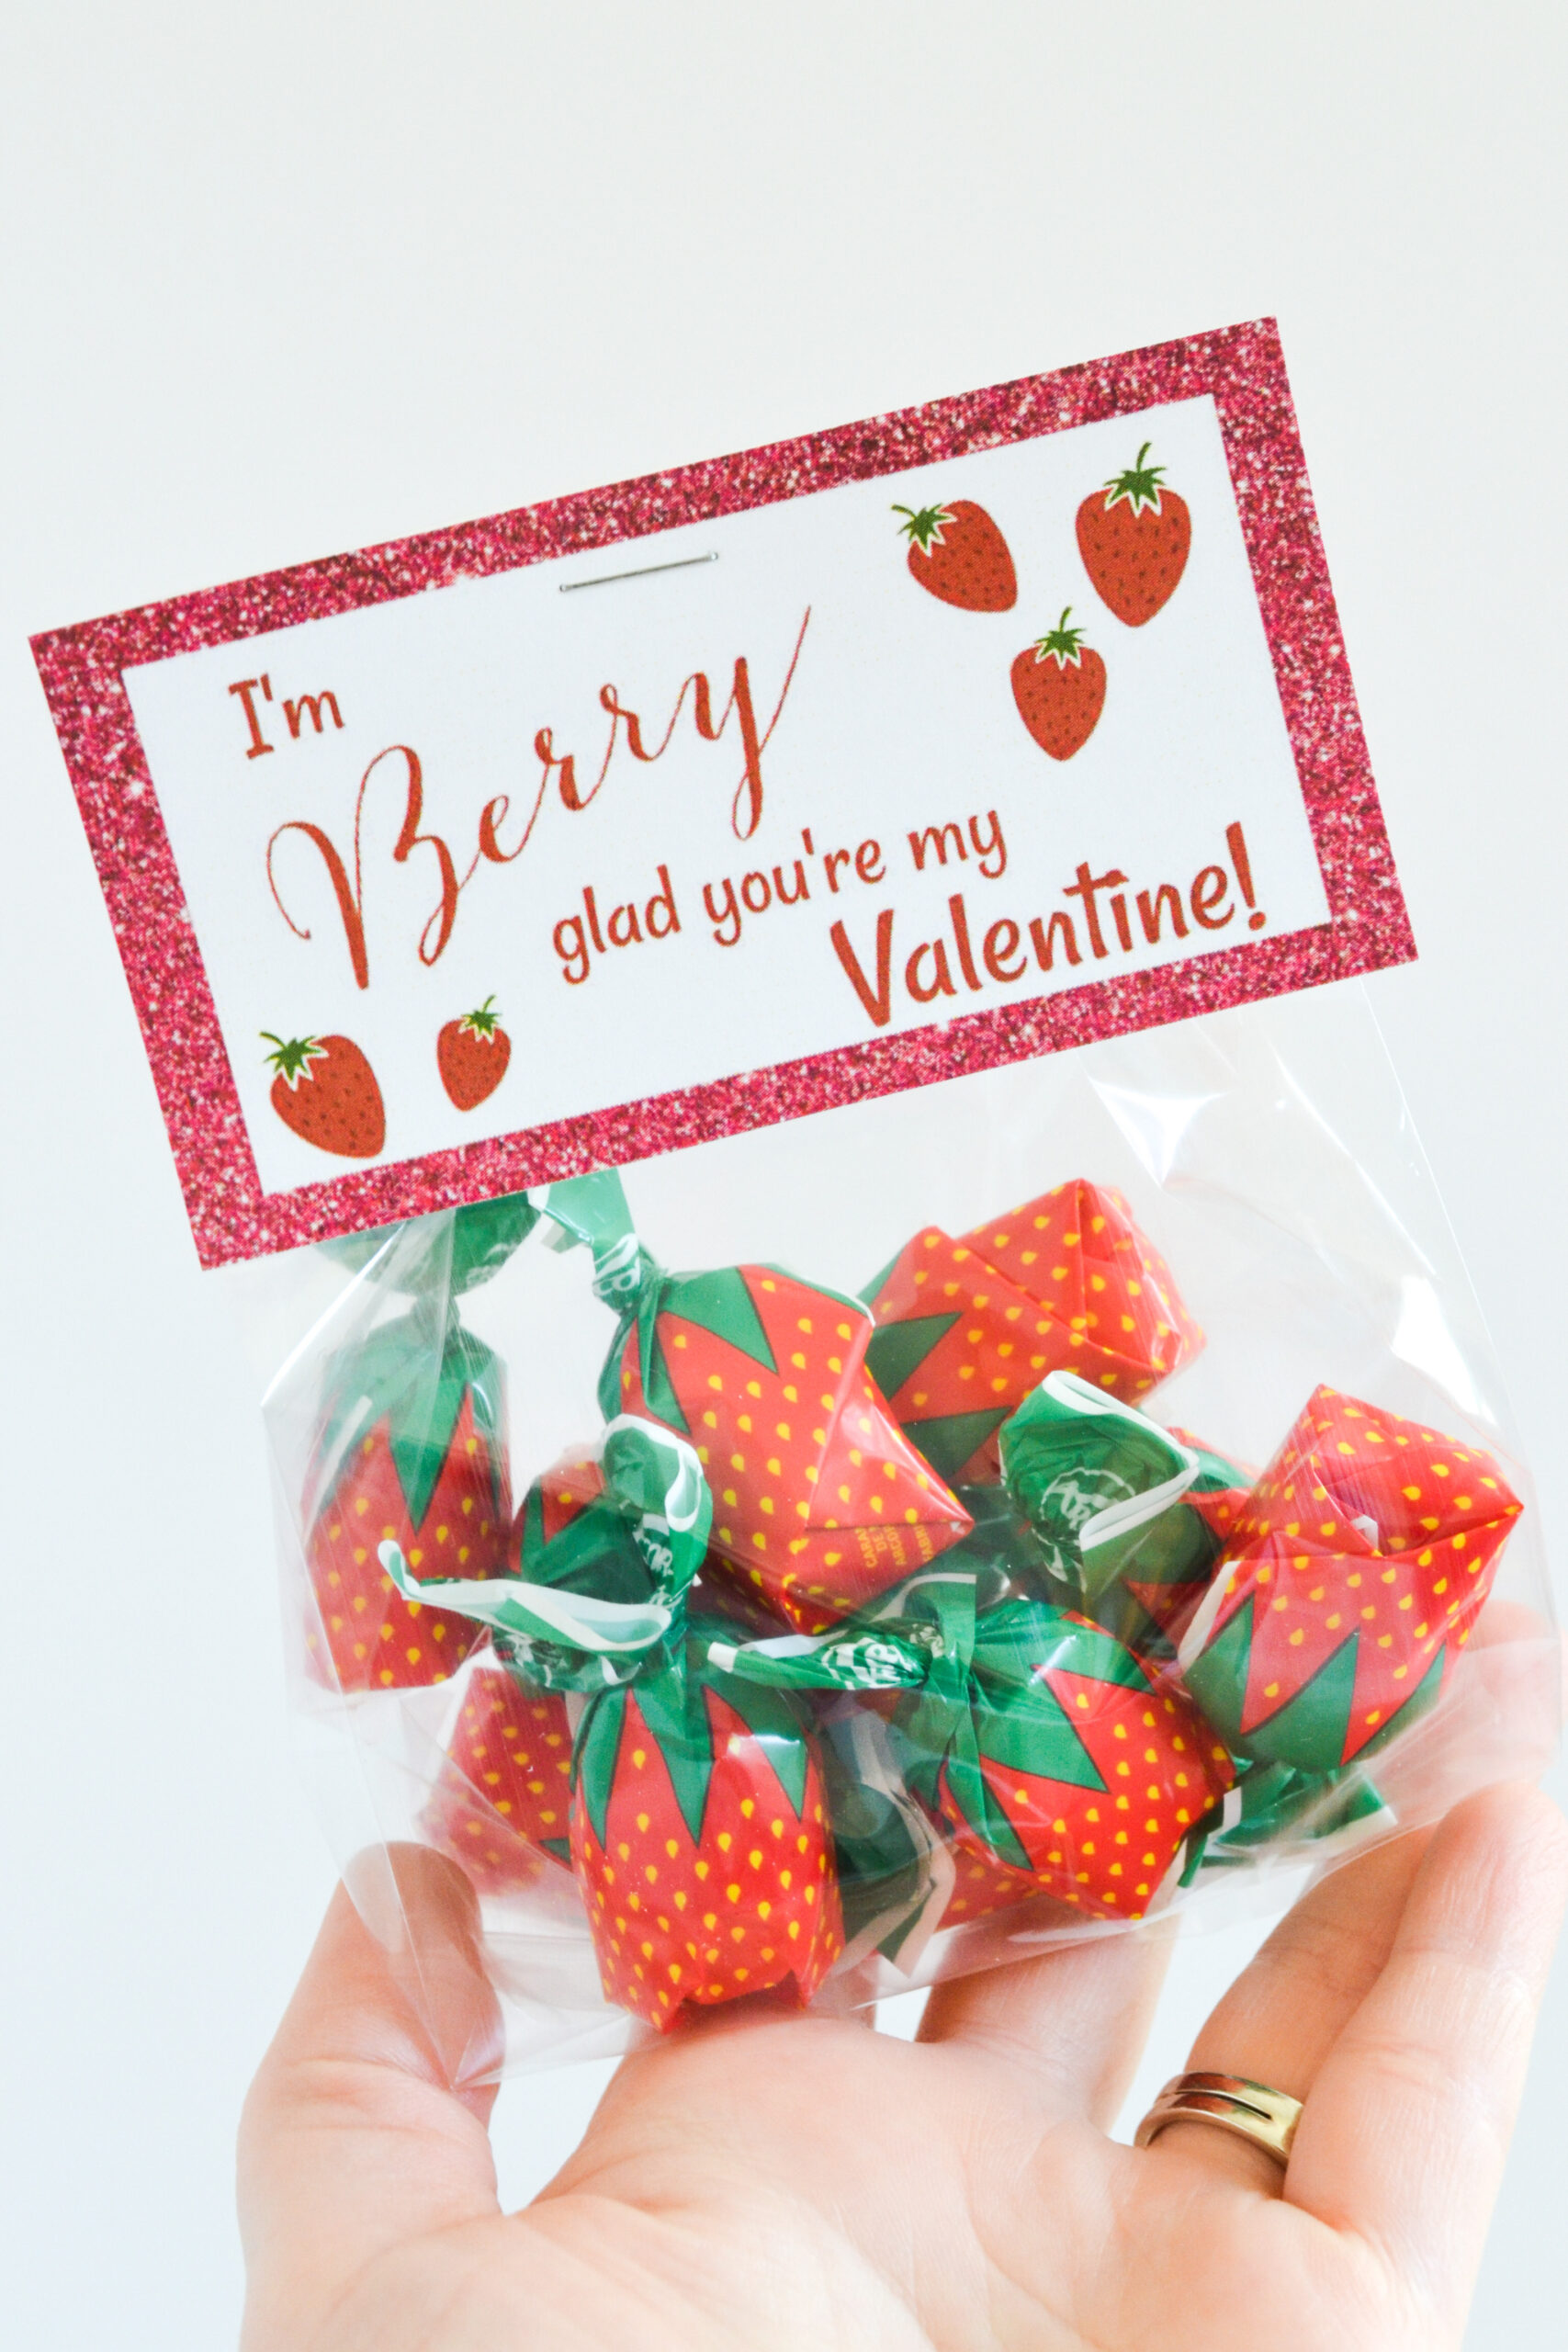 Free Printable: I'm Berry Glad You're My Valentine